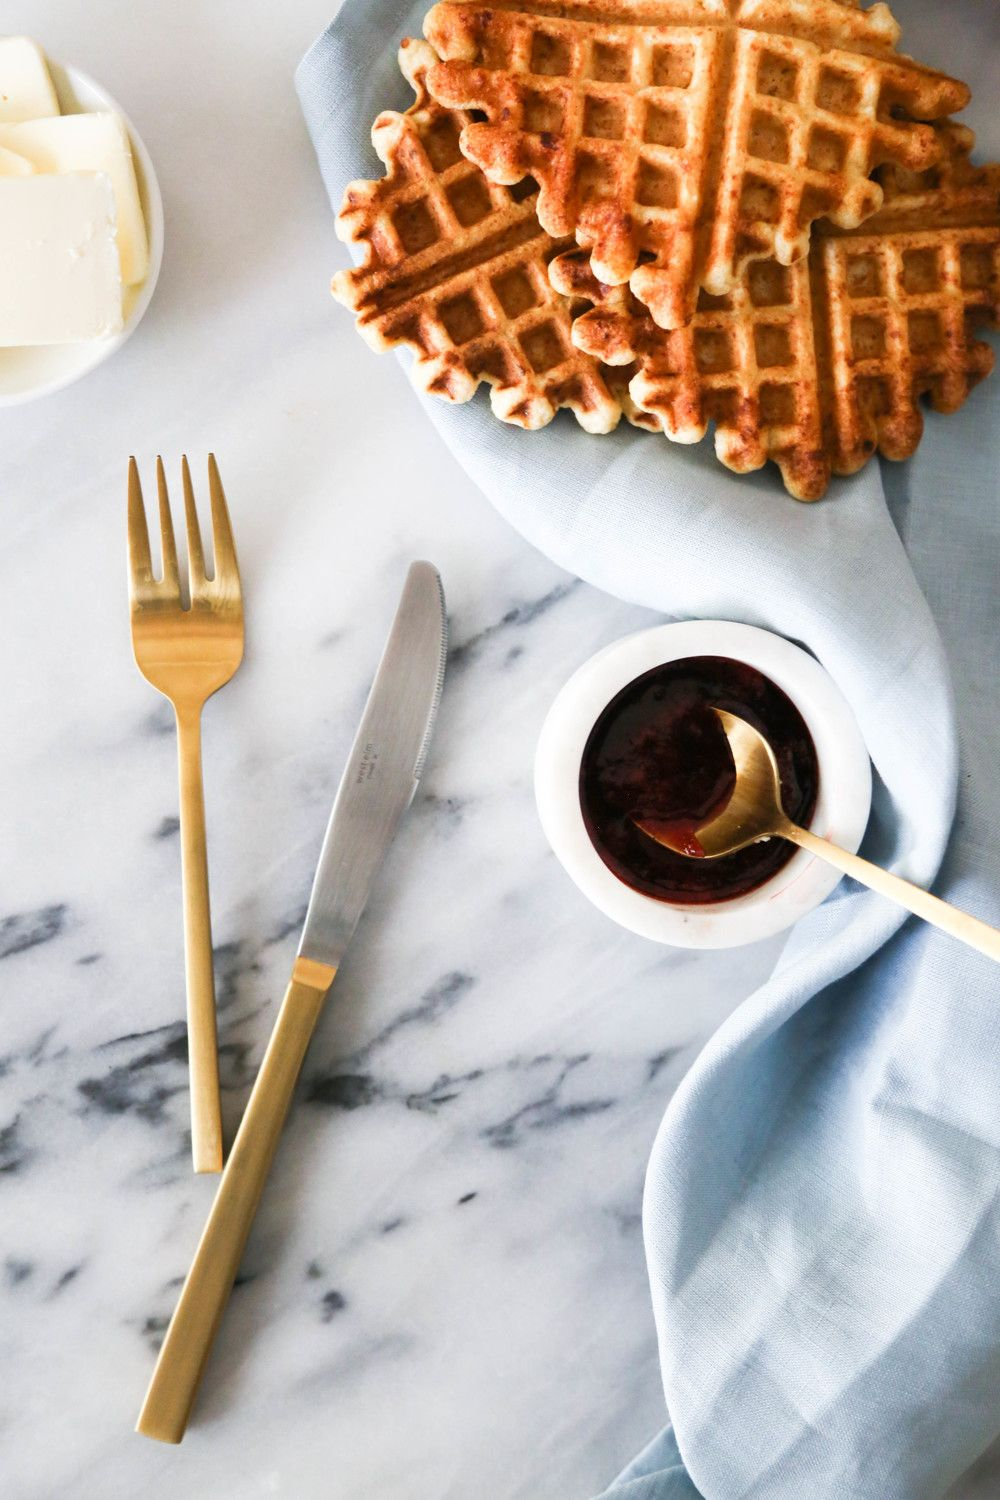 Whip It Up: Ricotta Waffles with Vanilla Strawberry Sauce